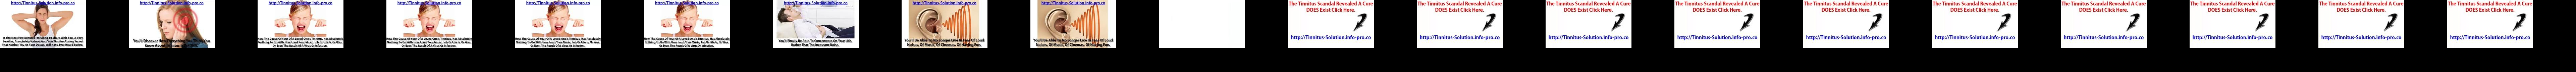 Pulsatile Tinnitus Cure, Constant Ear Ringing, Ear Wax